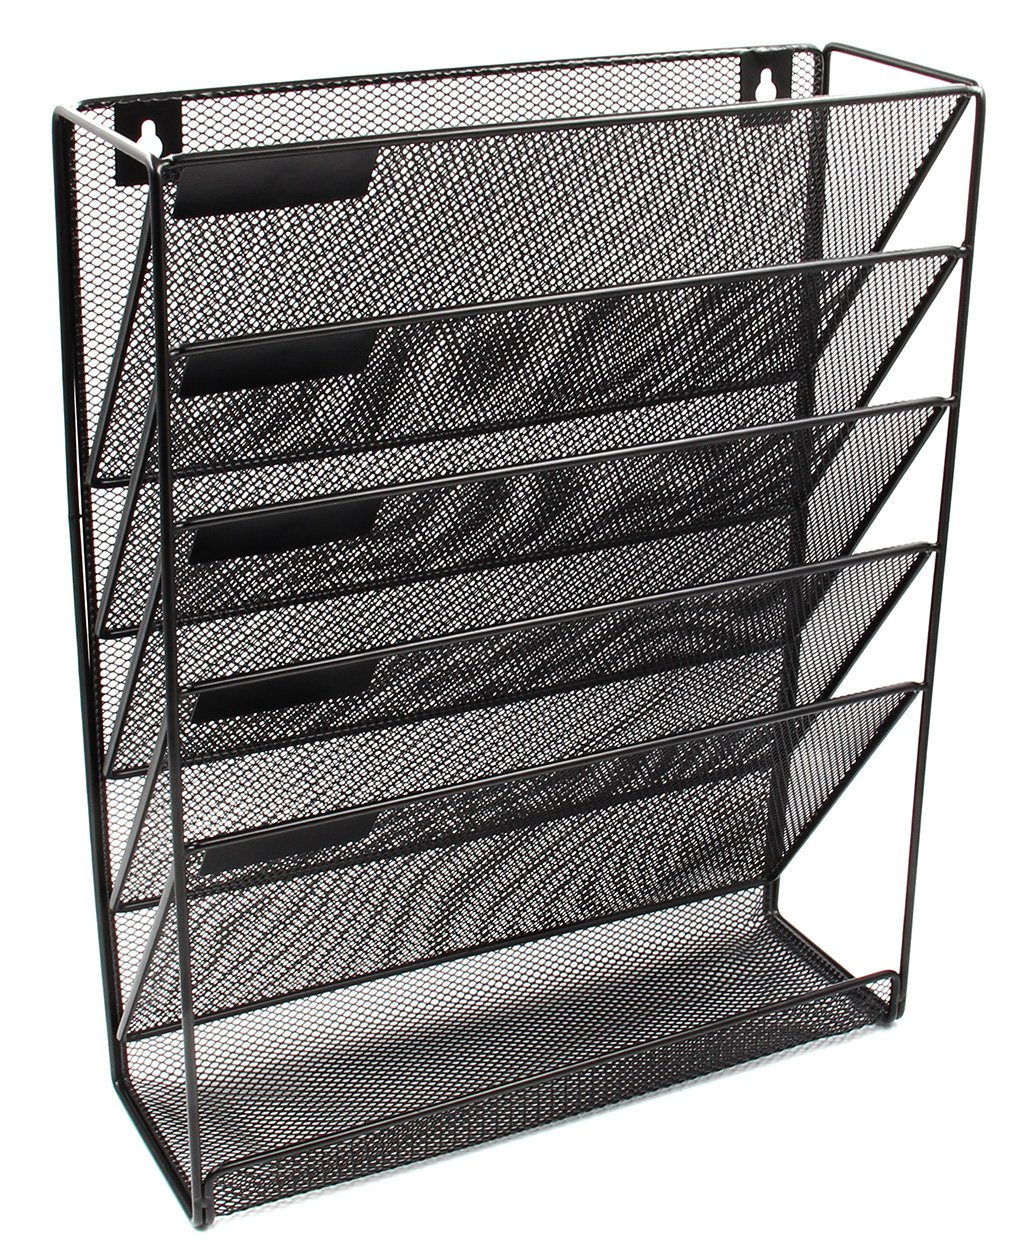 Amazon.com : EasyPAG Mesh Wall Mounted File Holder Organizer Literature  Rack 5 Compartments Black : Office Products